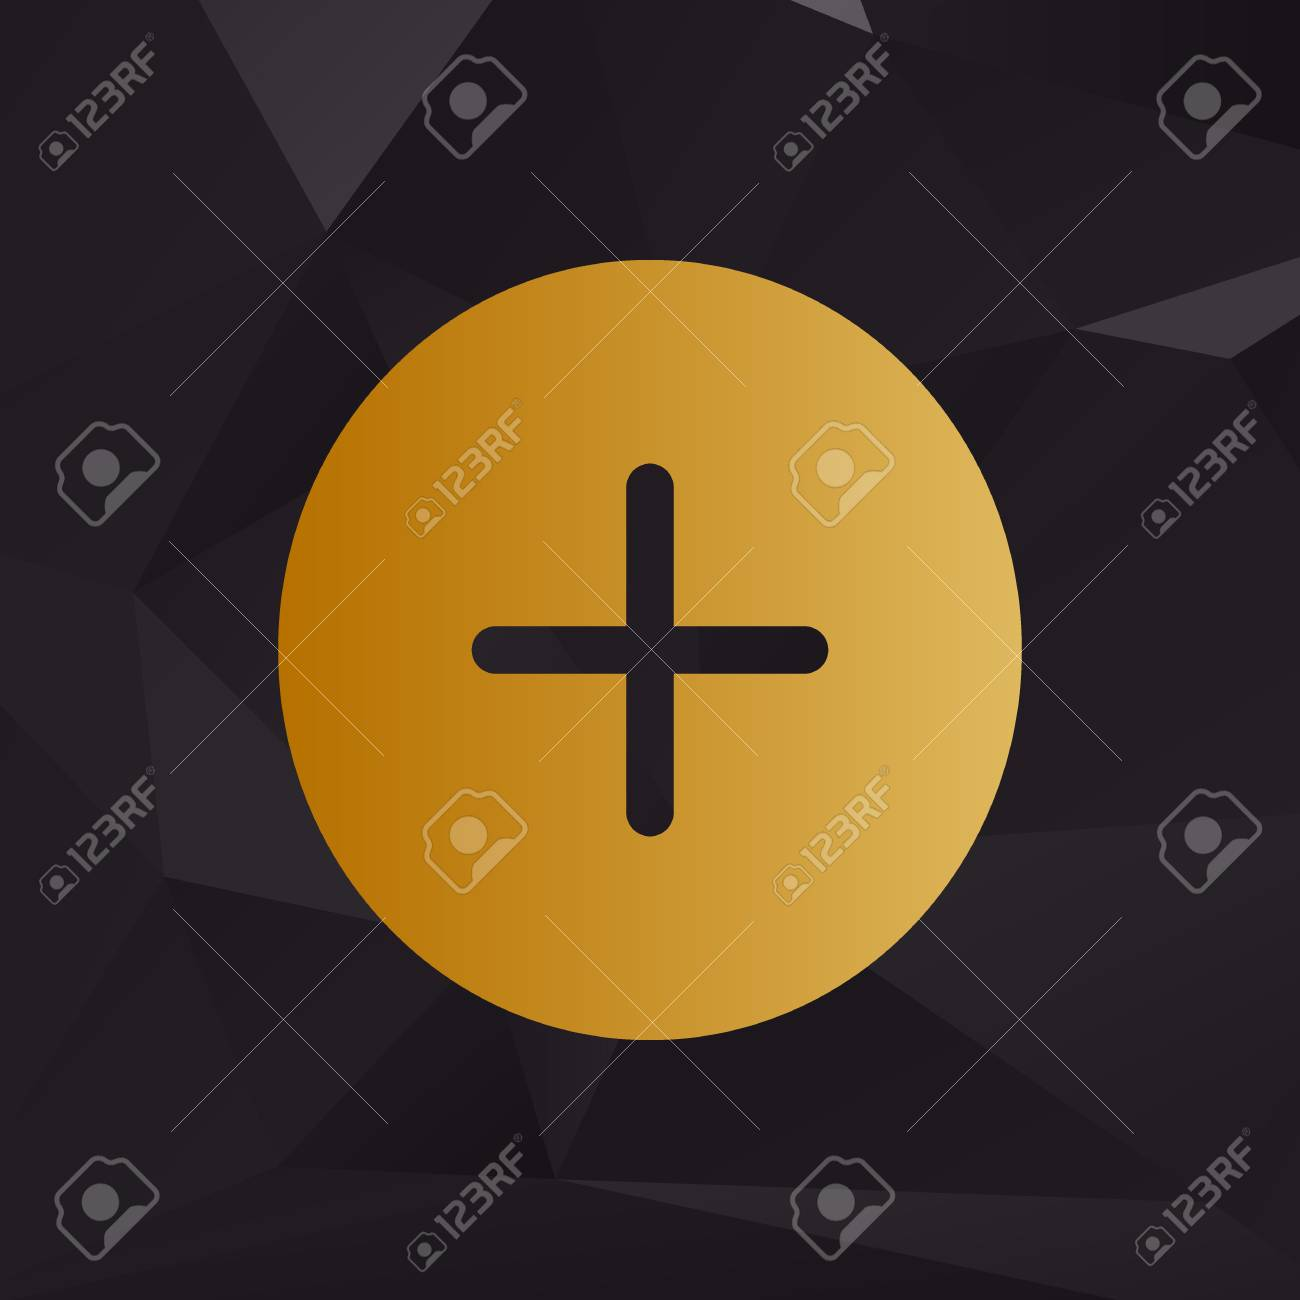 Positive symbol plus sign golden style on background with positive symbol plus sign golden style on background with polygons stock vector 63162458 biocorpaavc Choice Image